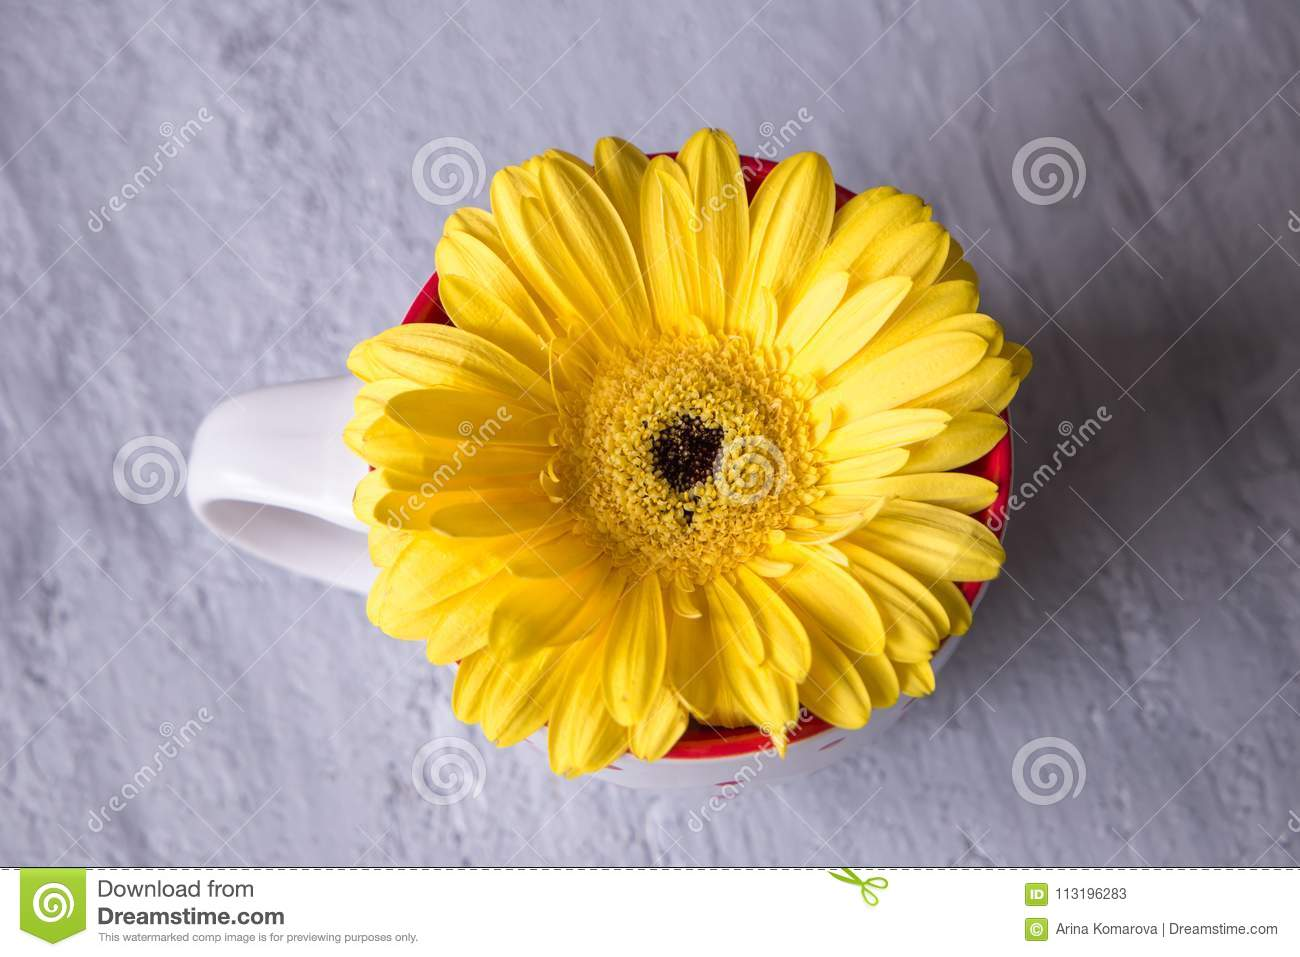 Gerbera daisy yellow flower im tea cup on grey background stock download gerbera daisy yellow flower im tea cup on grey background stock image image of mightylinksfo